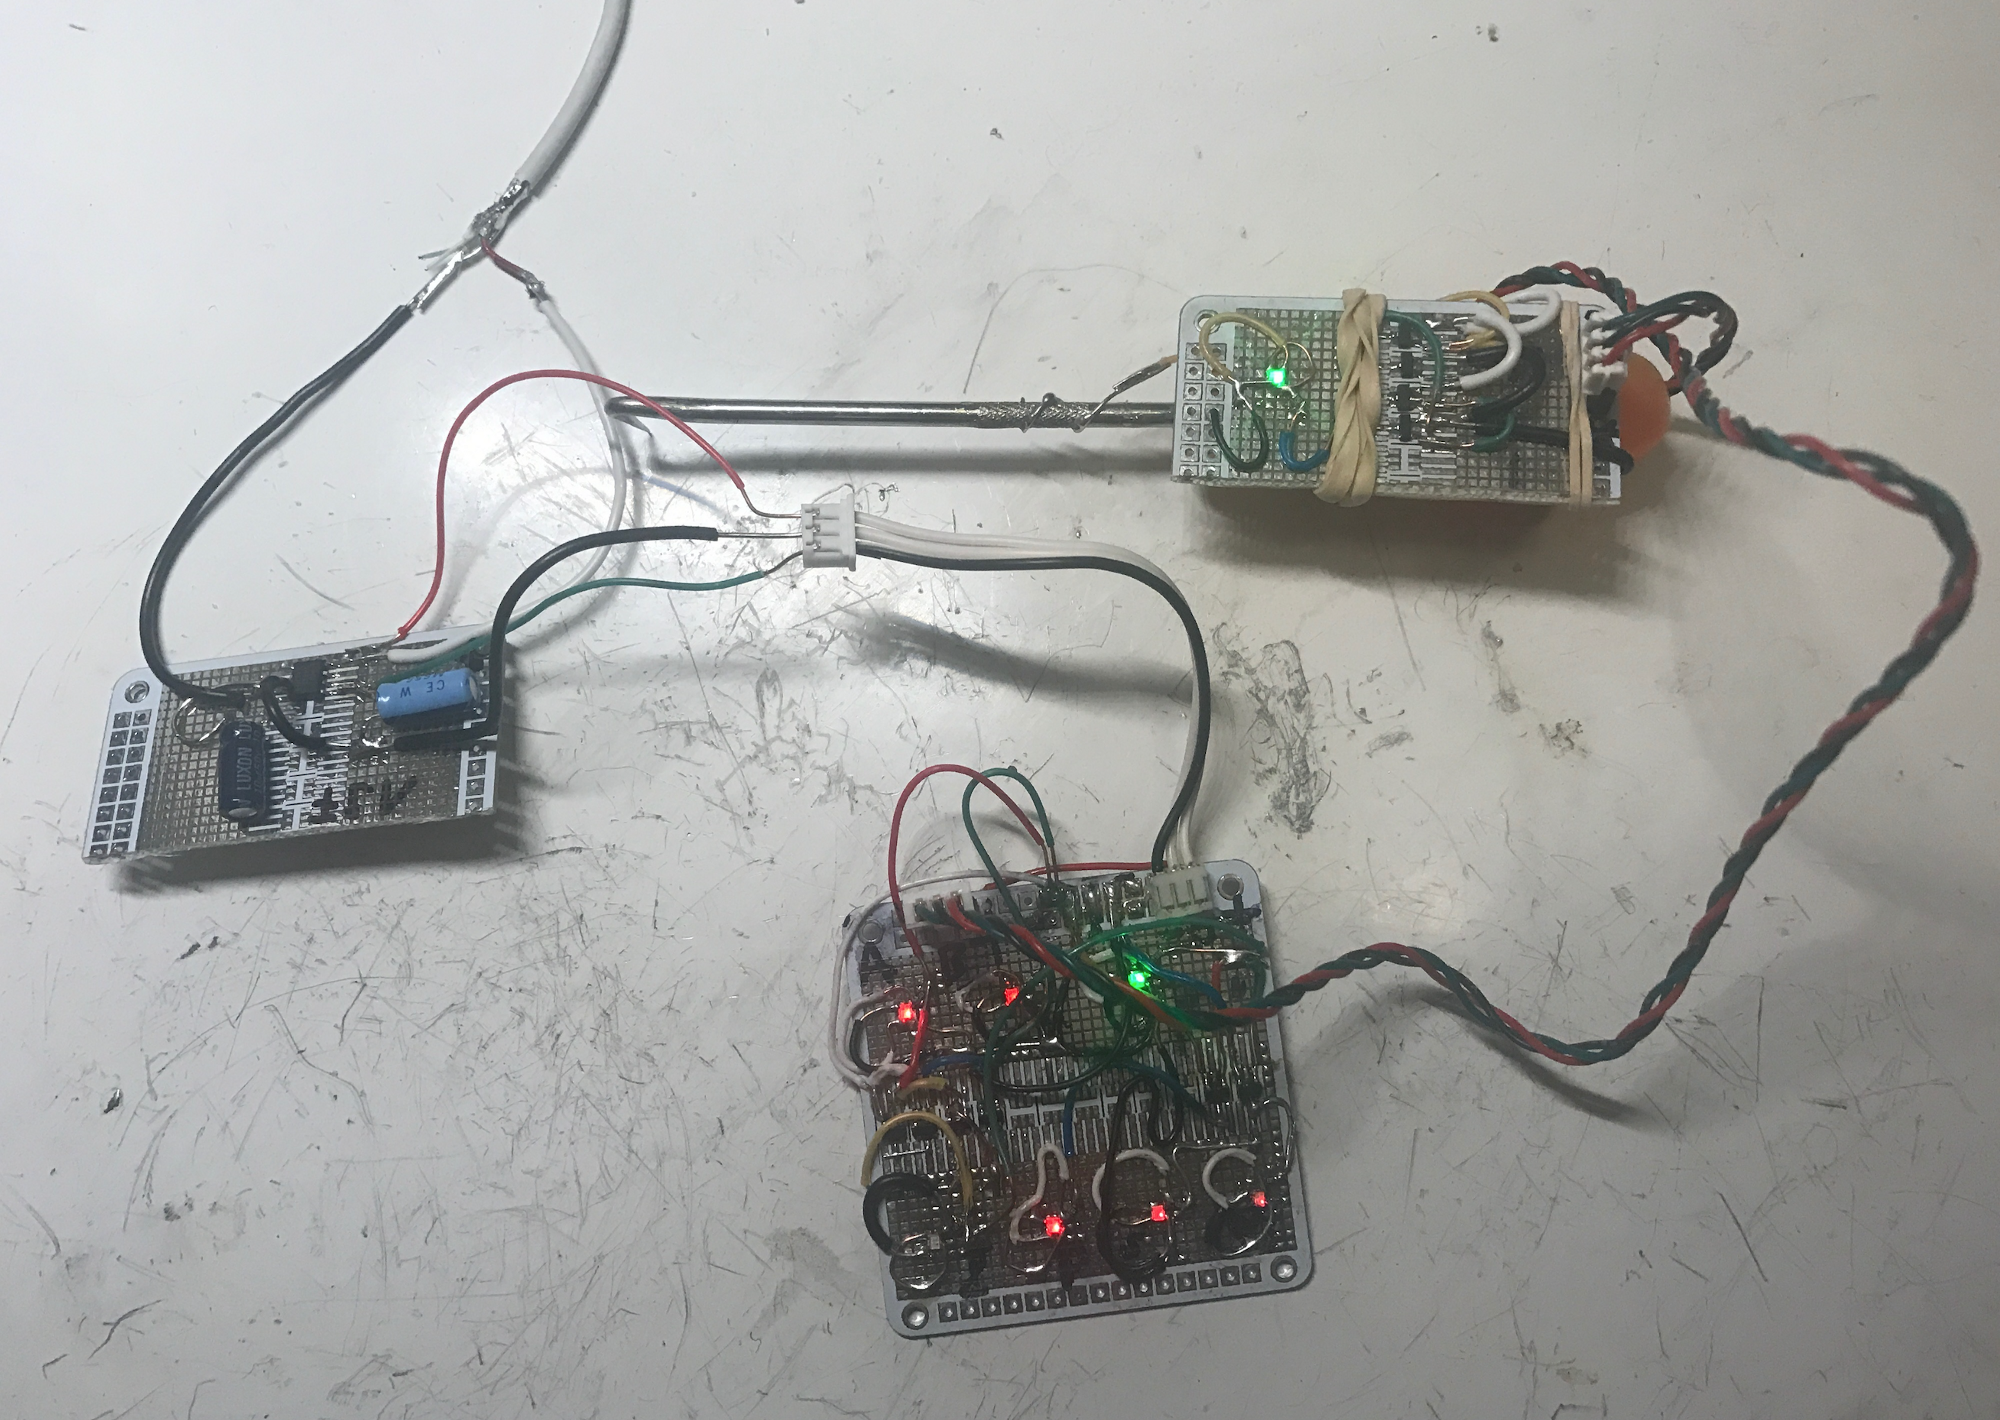 Voltage Regulators Revisted Lm317m 7812 Mcp170x Mic5219 And Icl7660 Usb Battery Replacement By Lm317 It Is Able To Successfully Power Both Circuits From Exploring Ternary Logic Tnand Tand Gates Probe